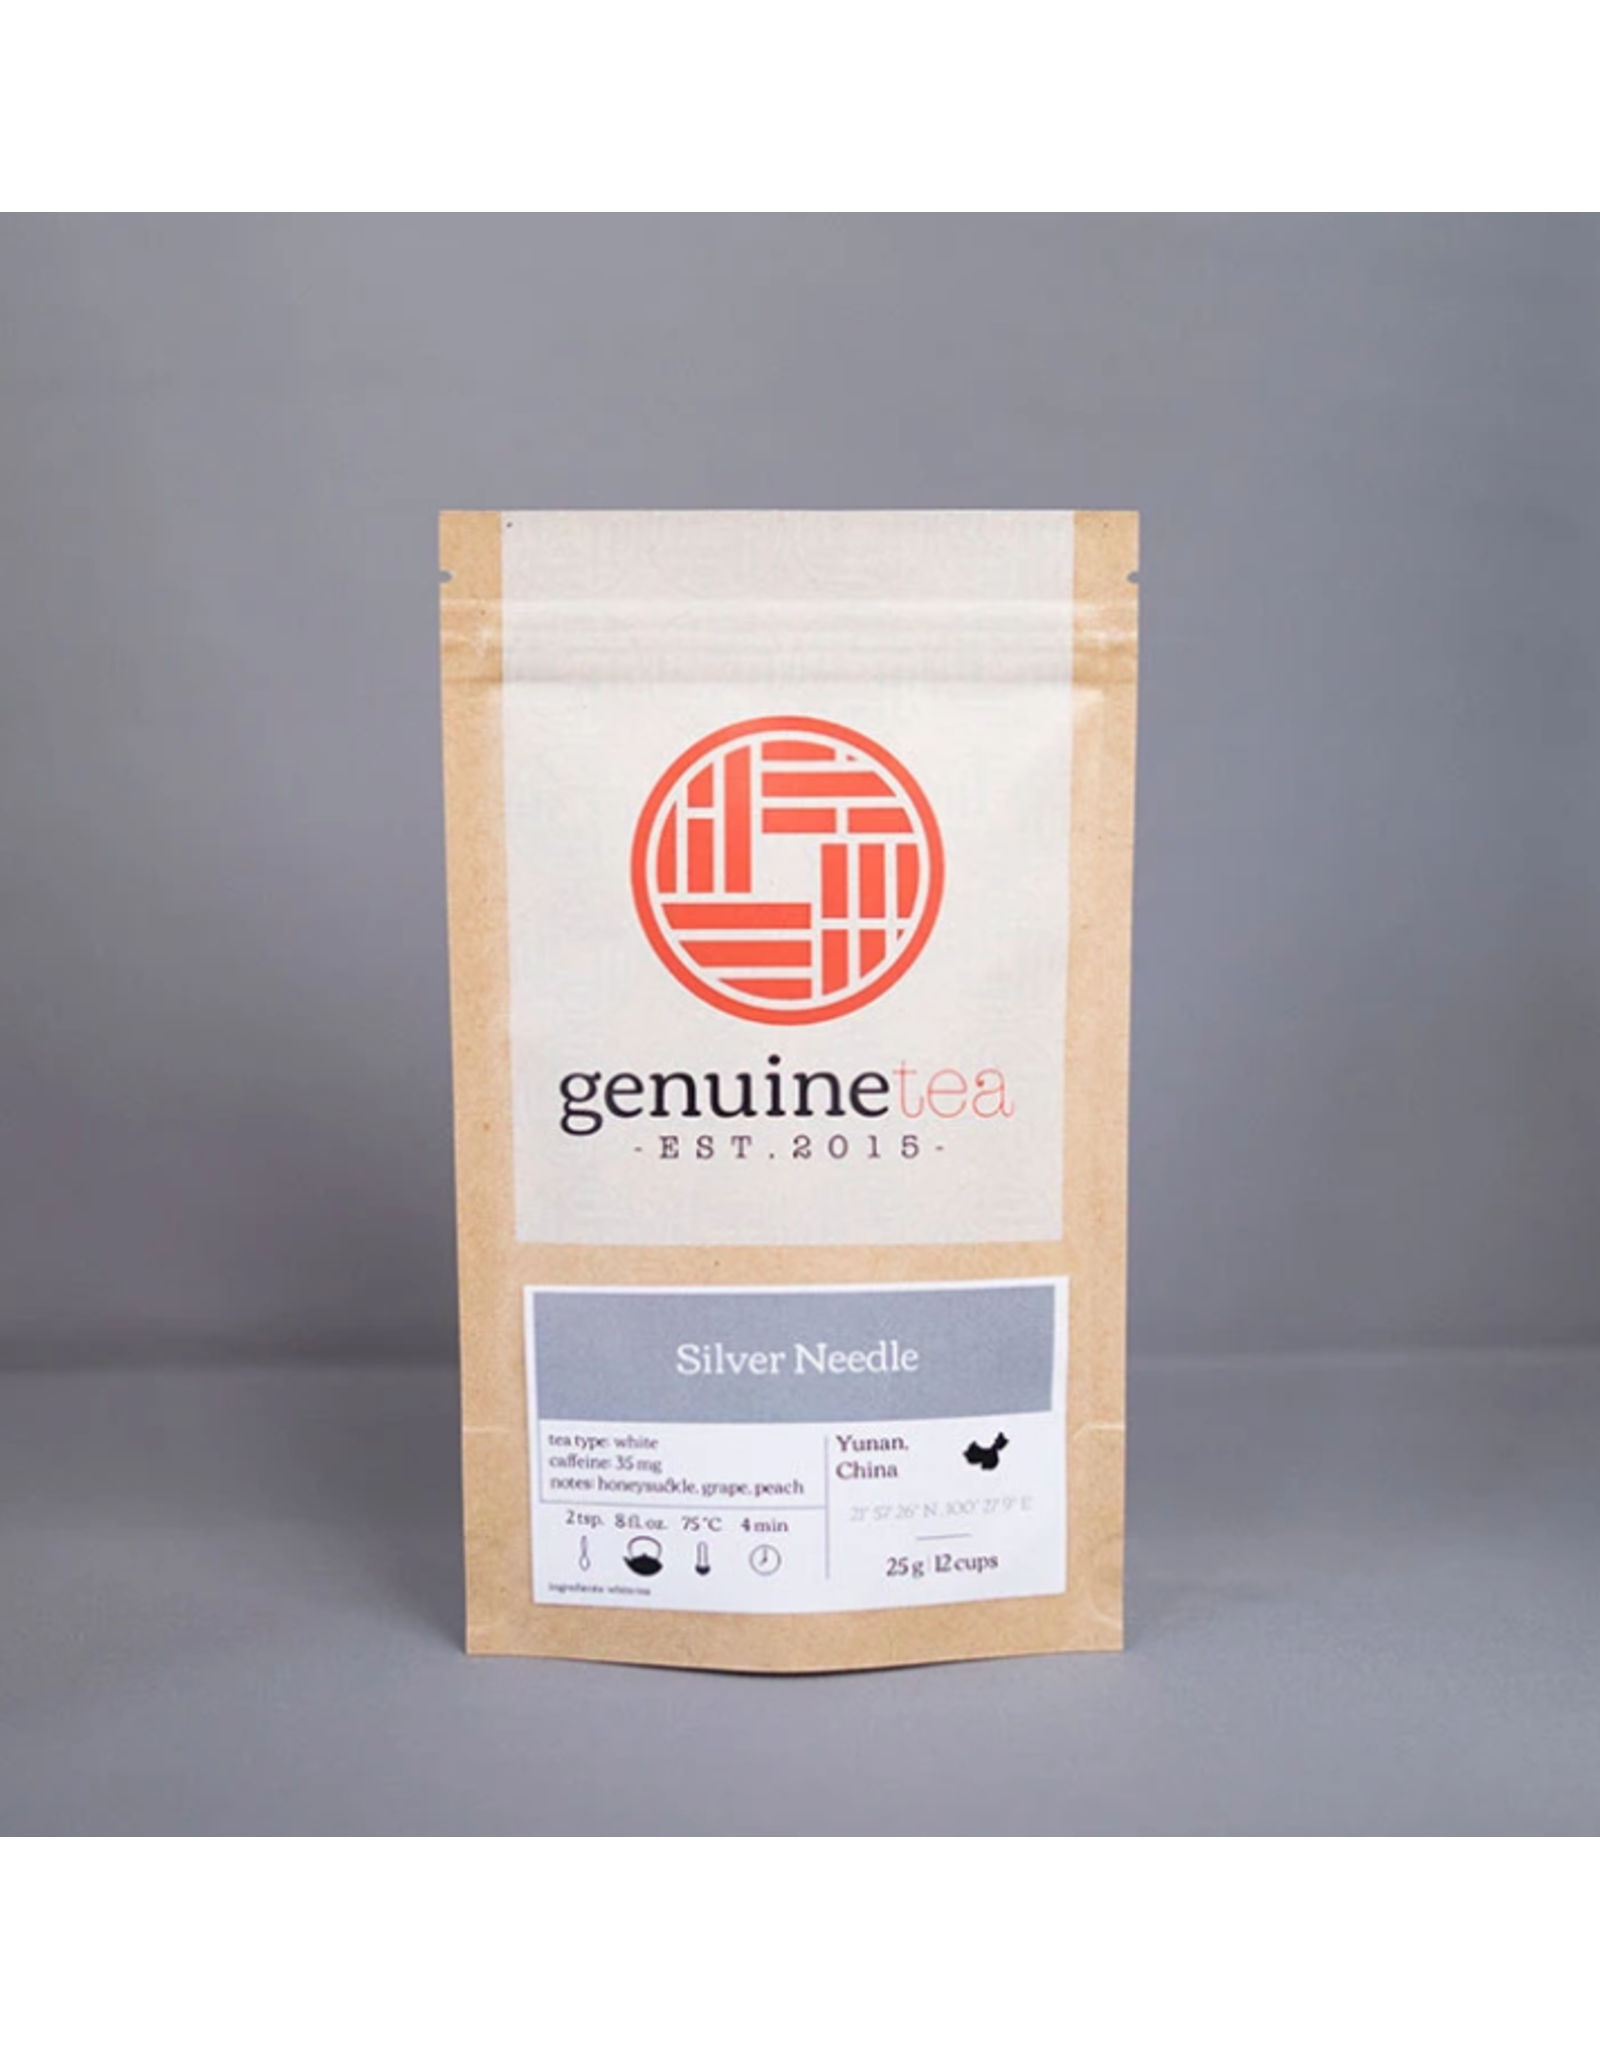 Genuine Tea Genuine Tea, Silver Needle 25g Loose